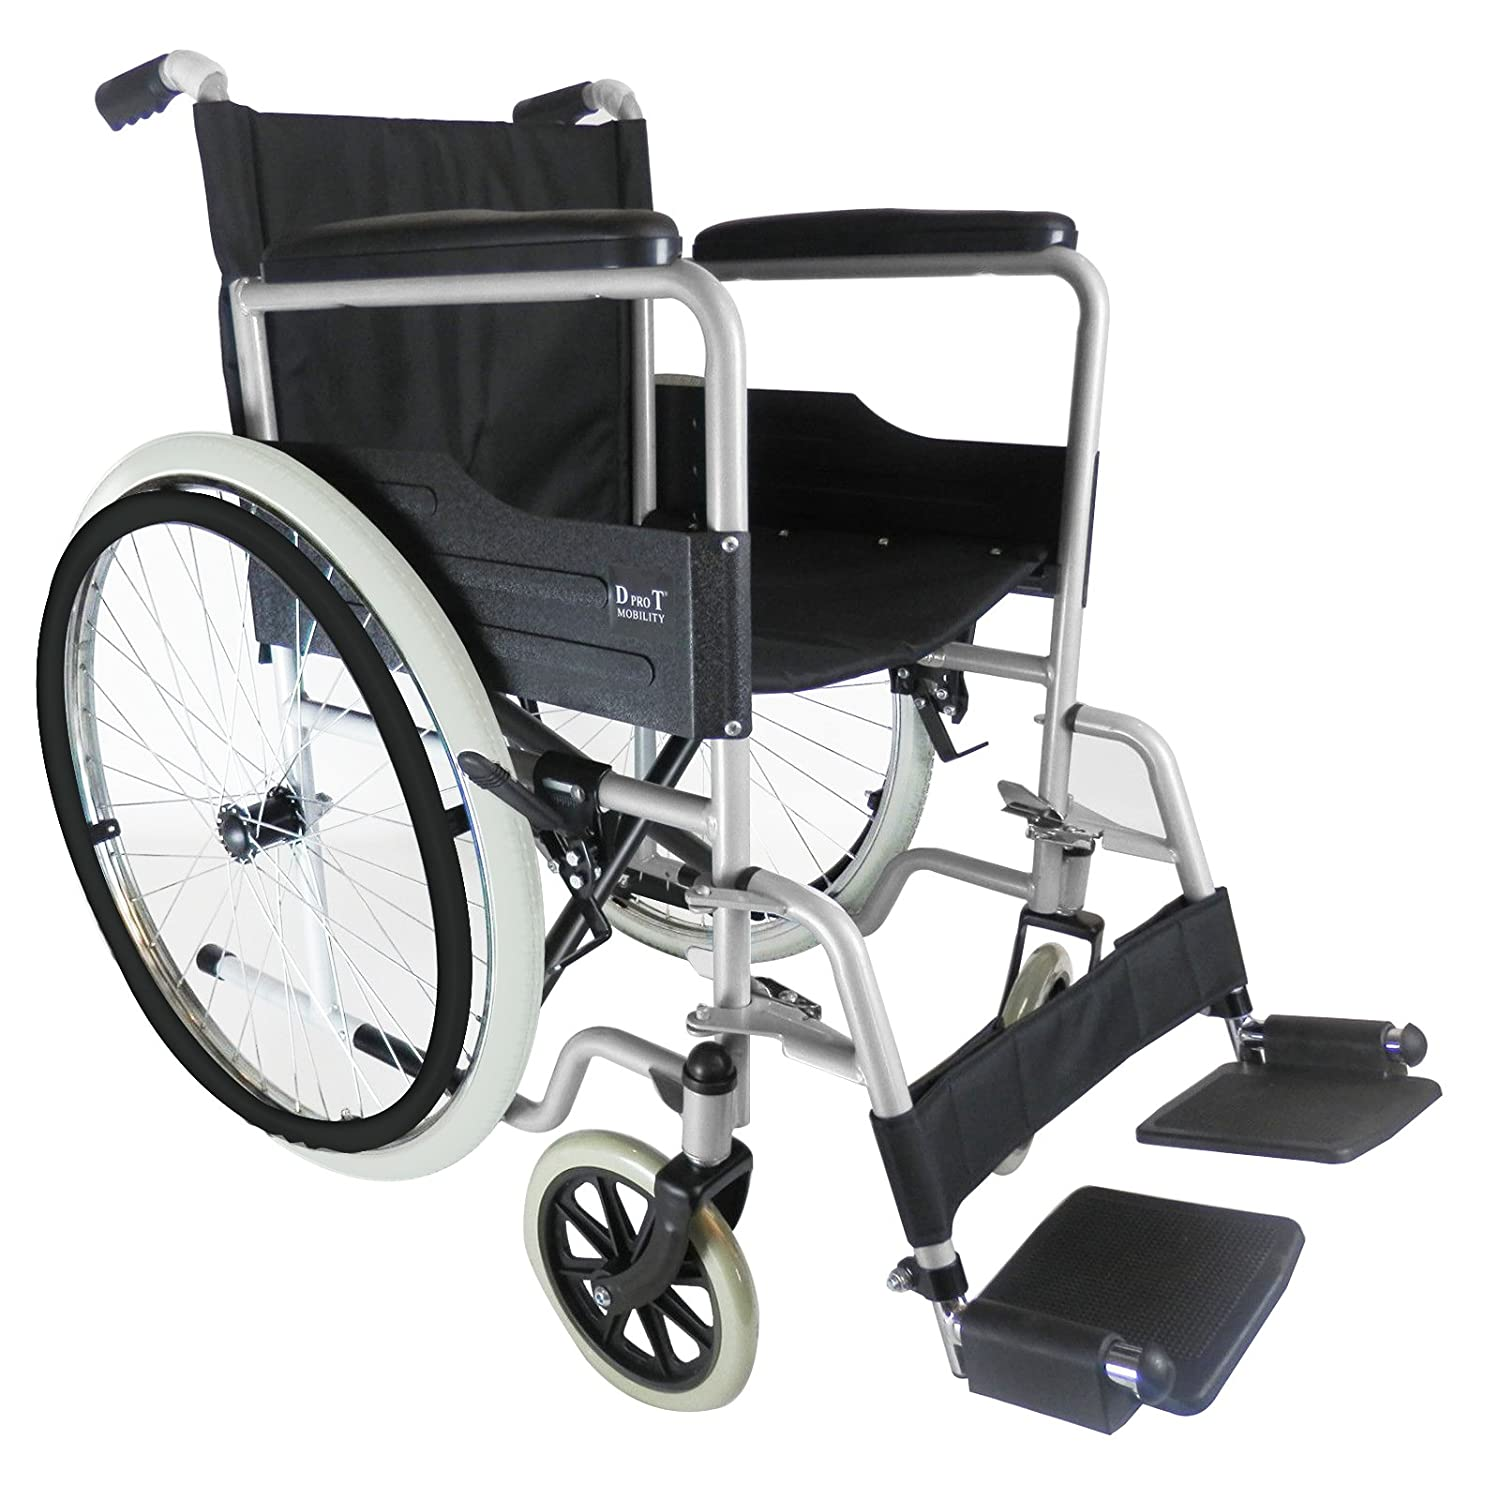 D PRO T extra padded seat Folding Self Propelled Wheelchair Removable  Footrests Puncture Proof With Armrest And Portable (Red)